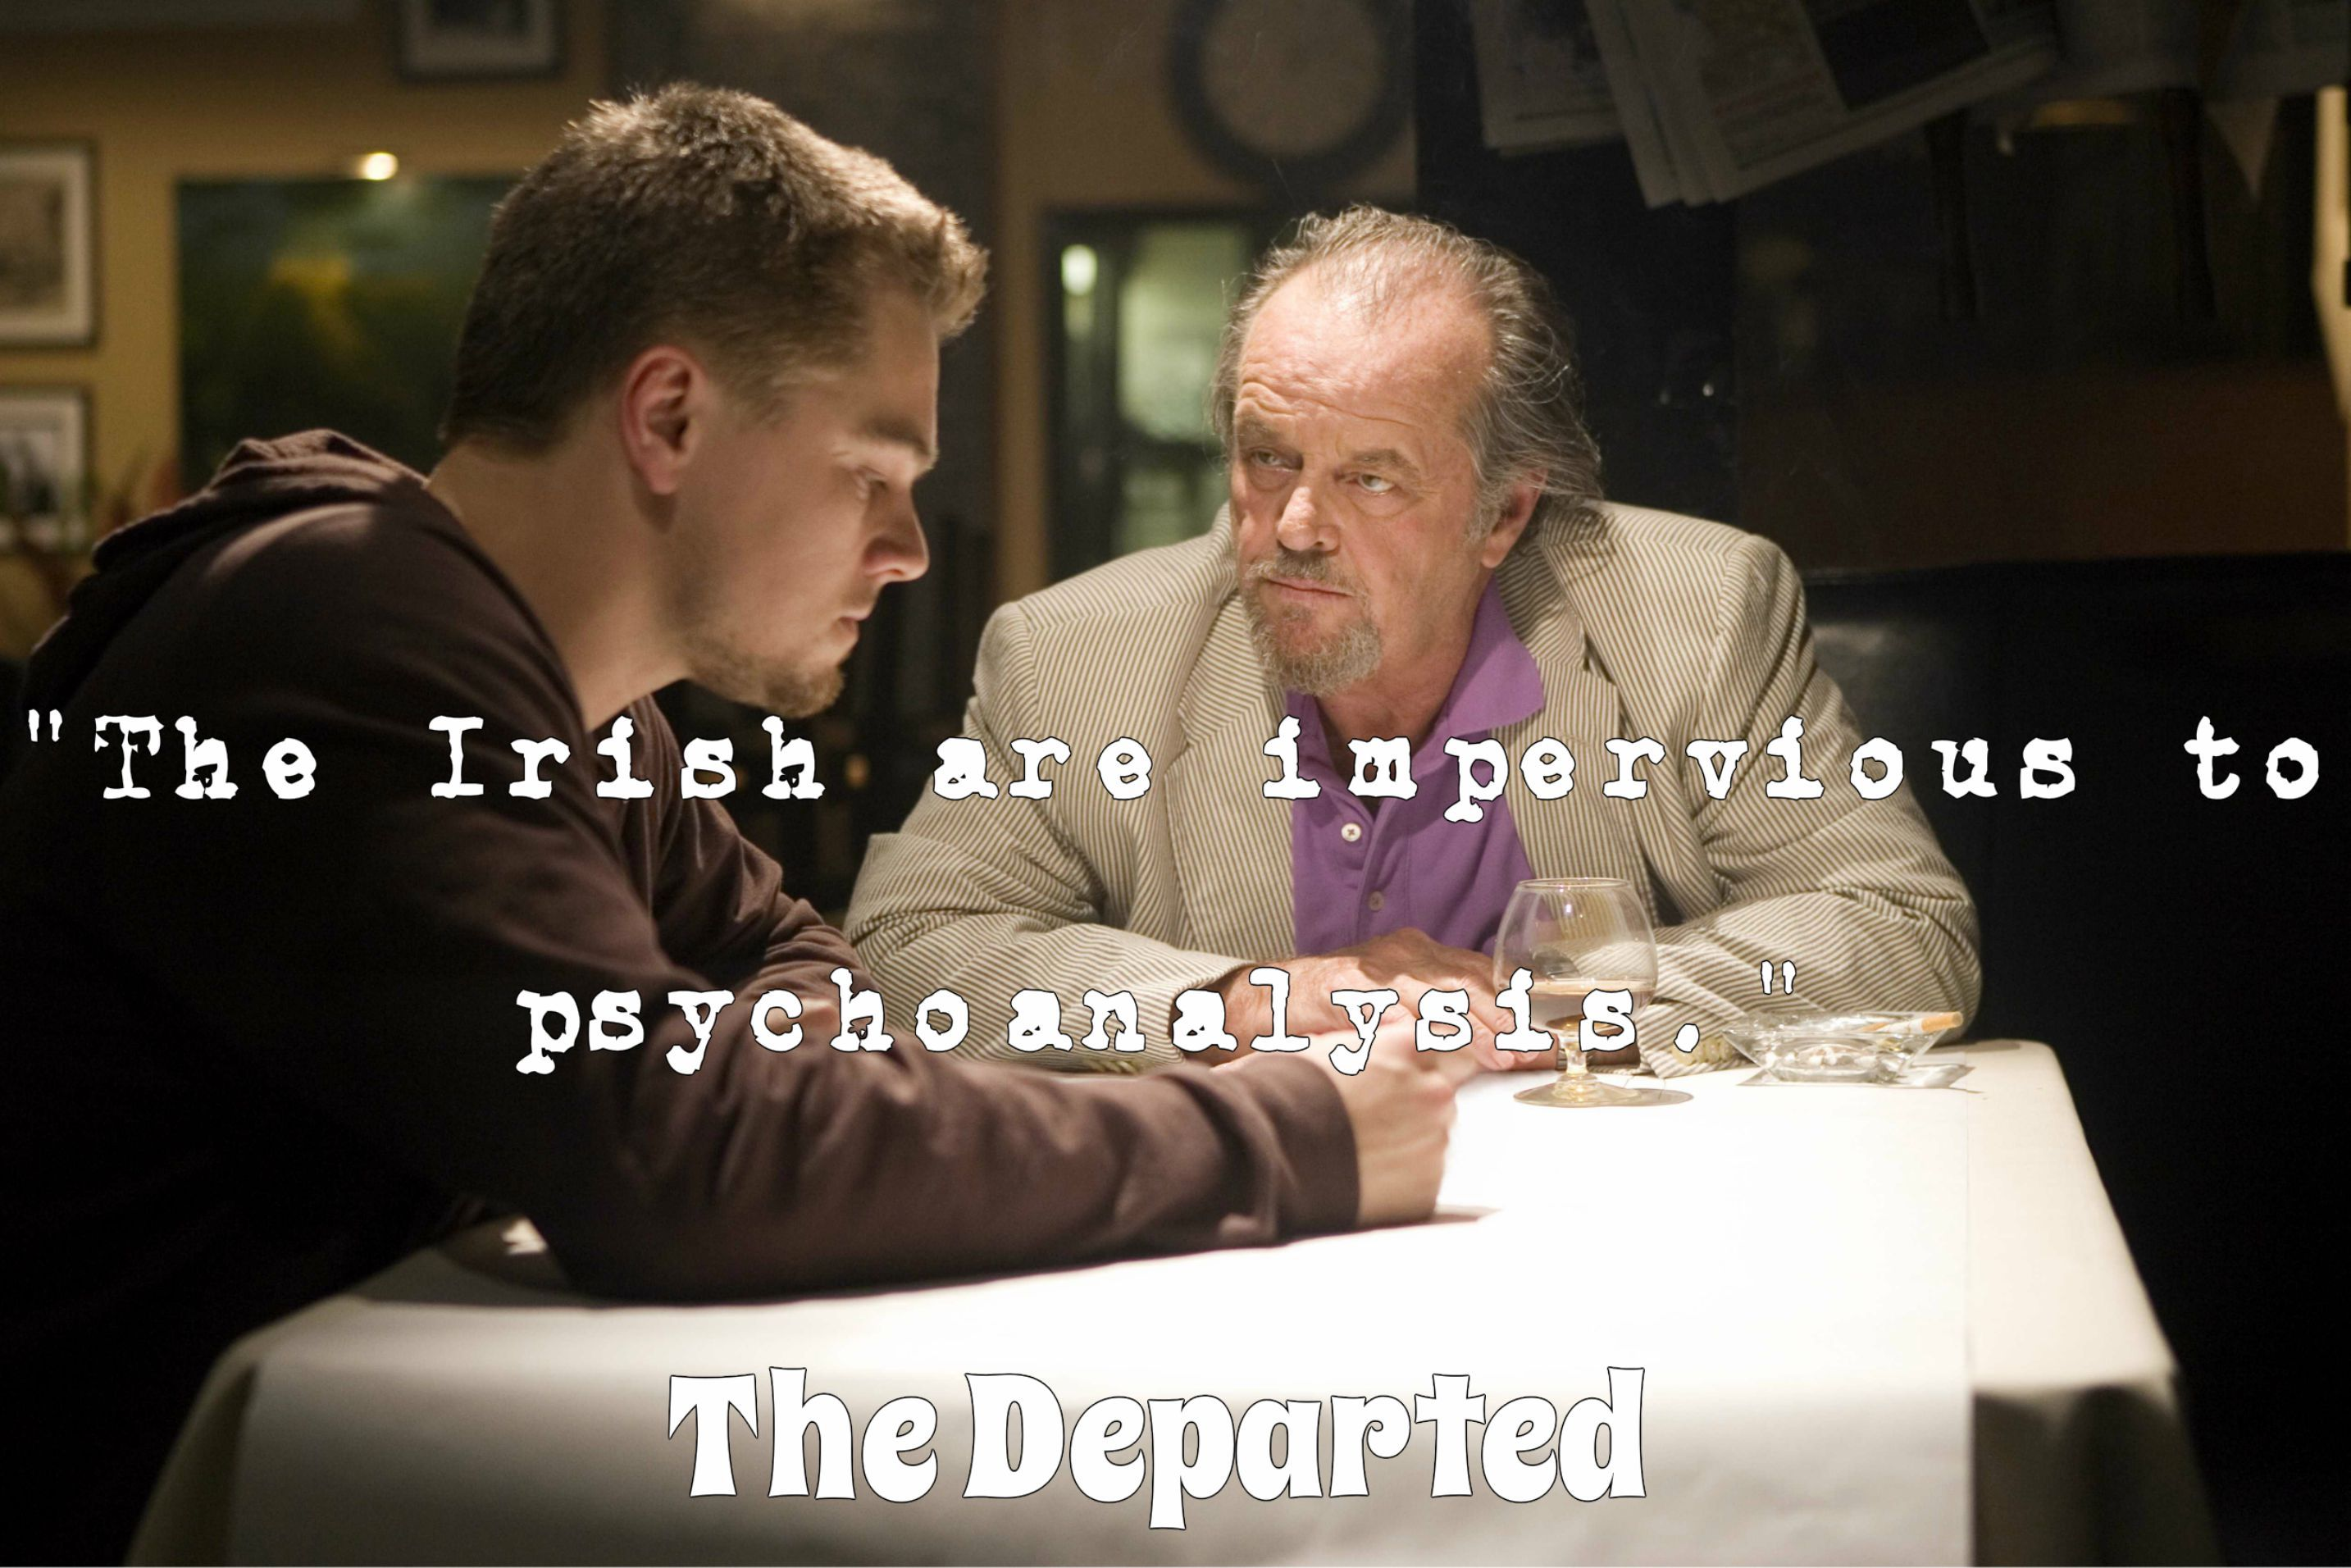 The Departed Quotes Irish